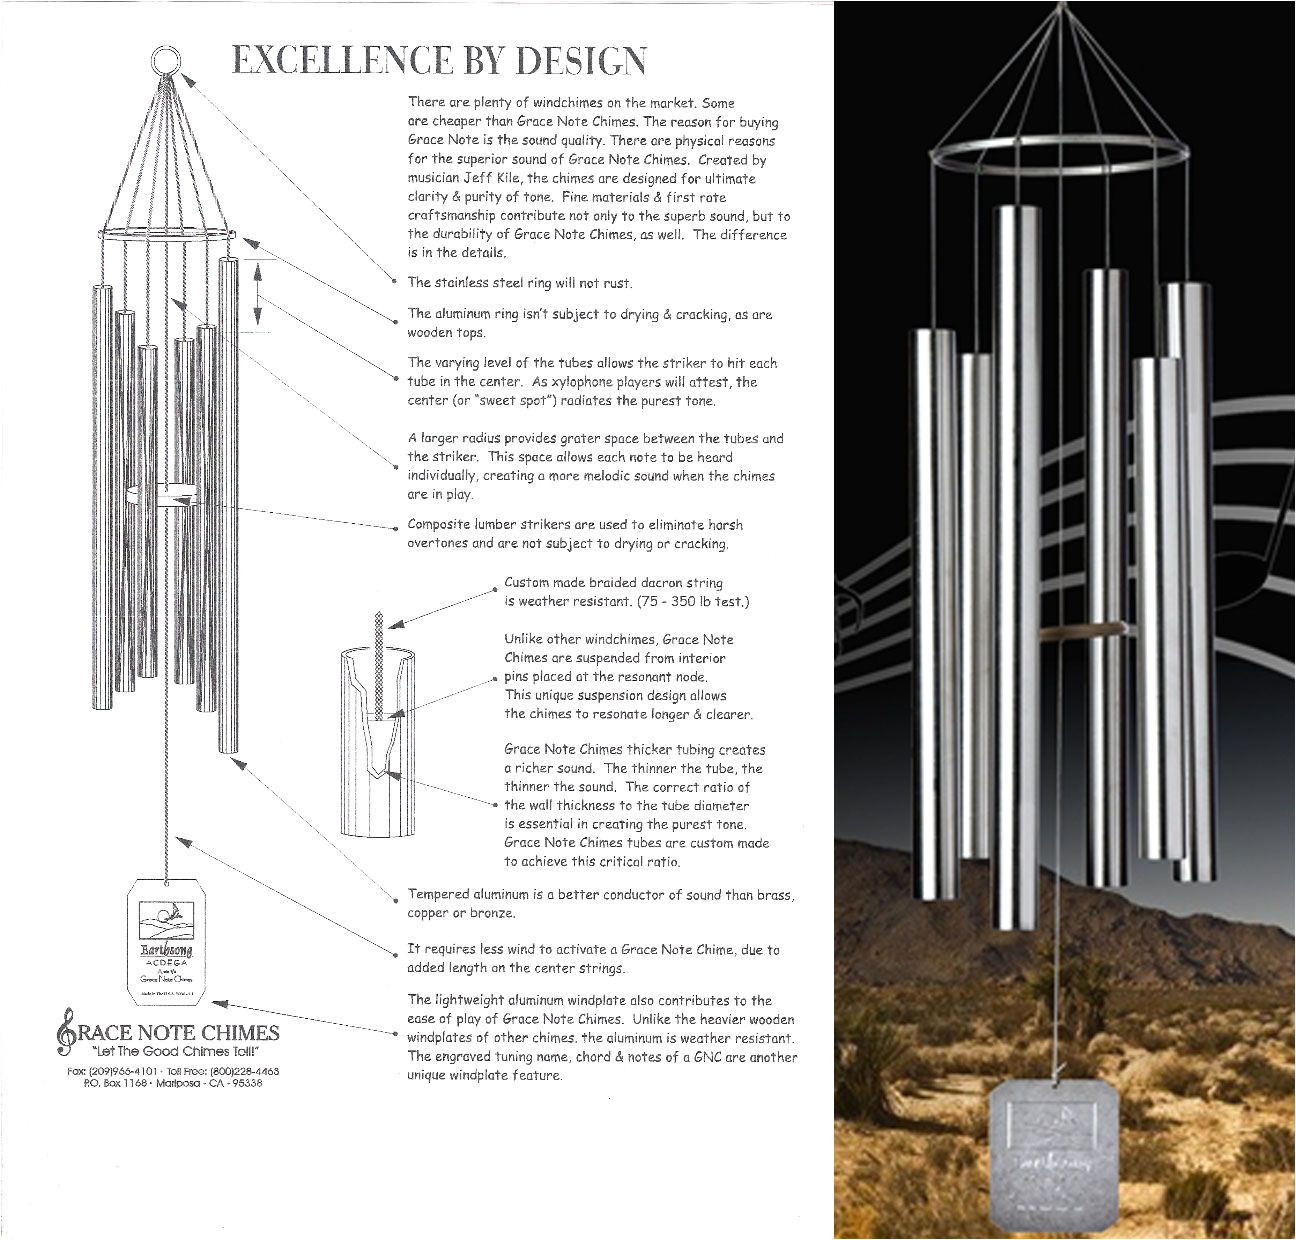 Grace Note Wind Chimes Mariposa Ca Pin by David Owens On Wind Chimes Pinterest Yards